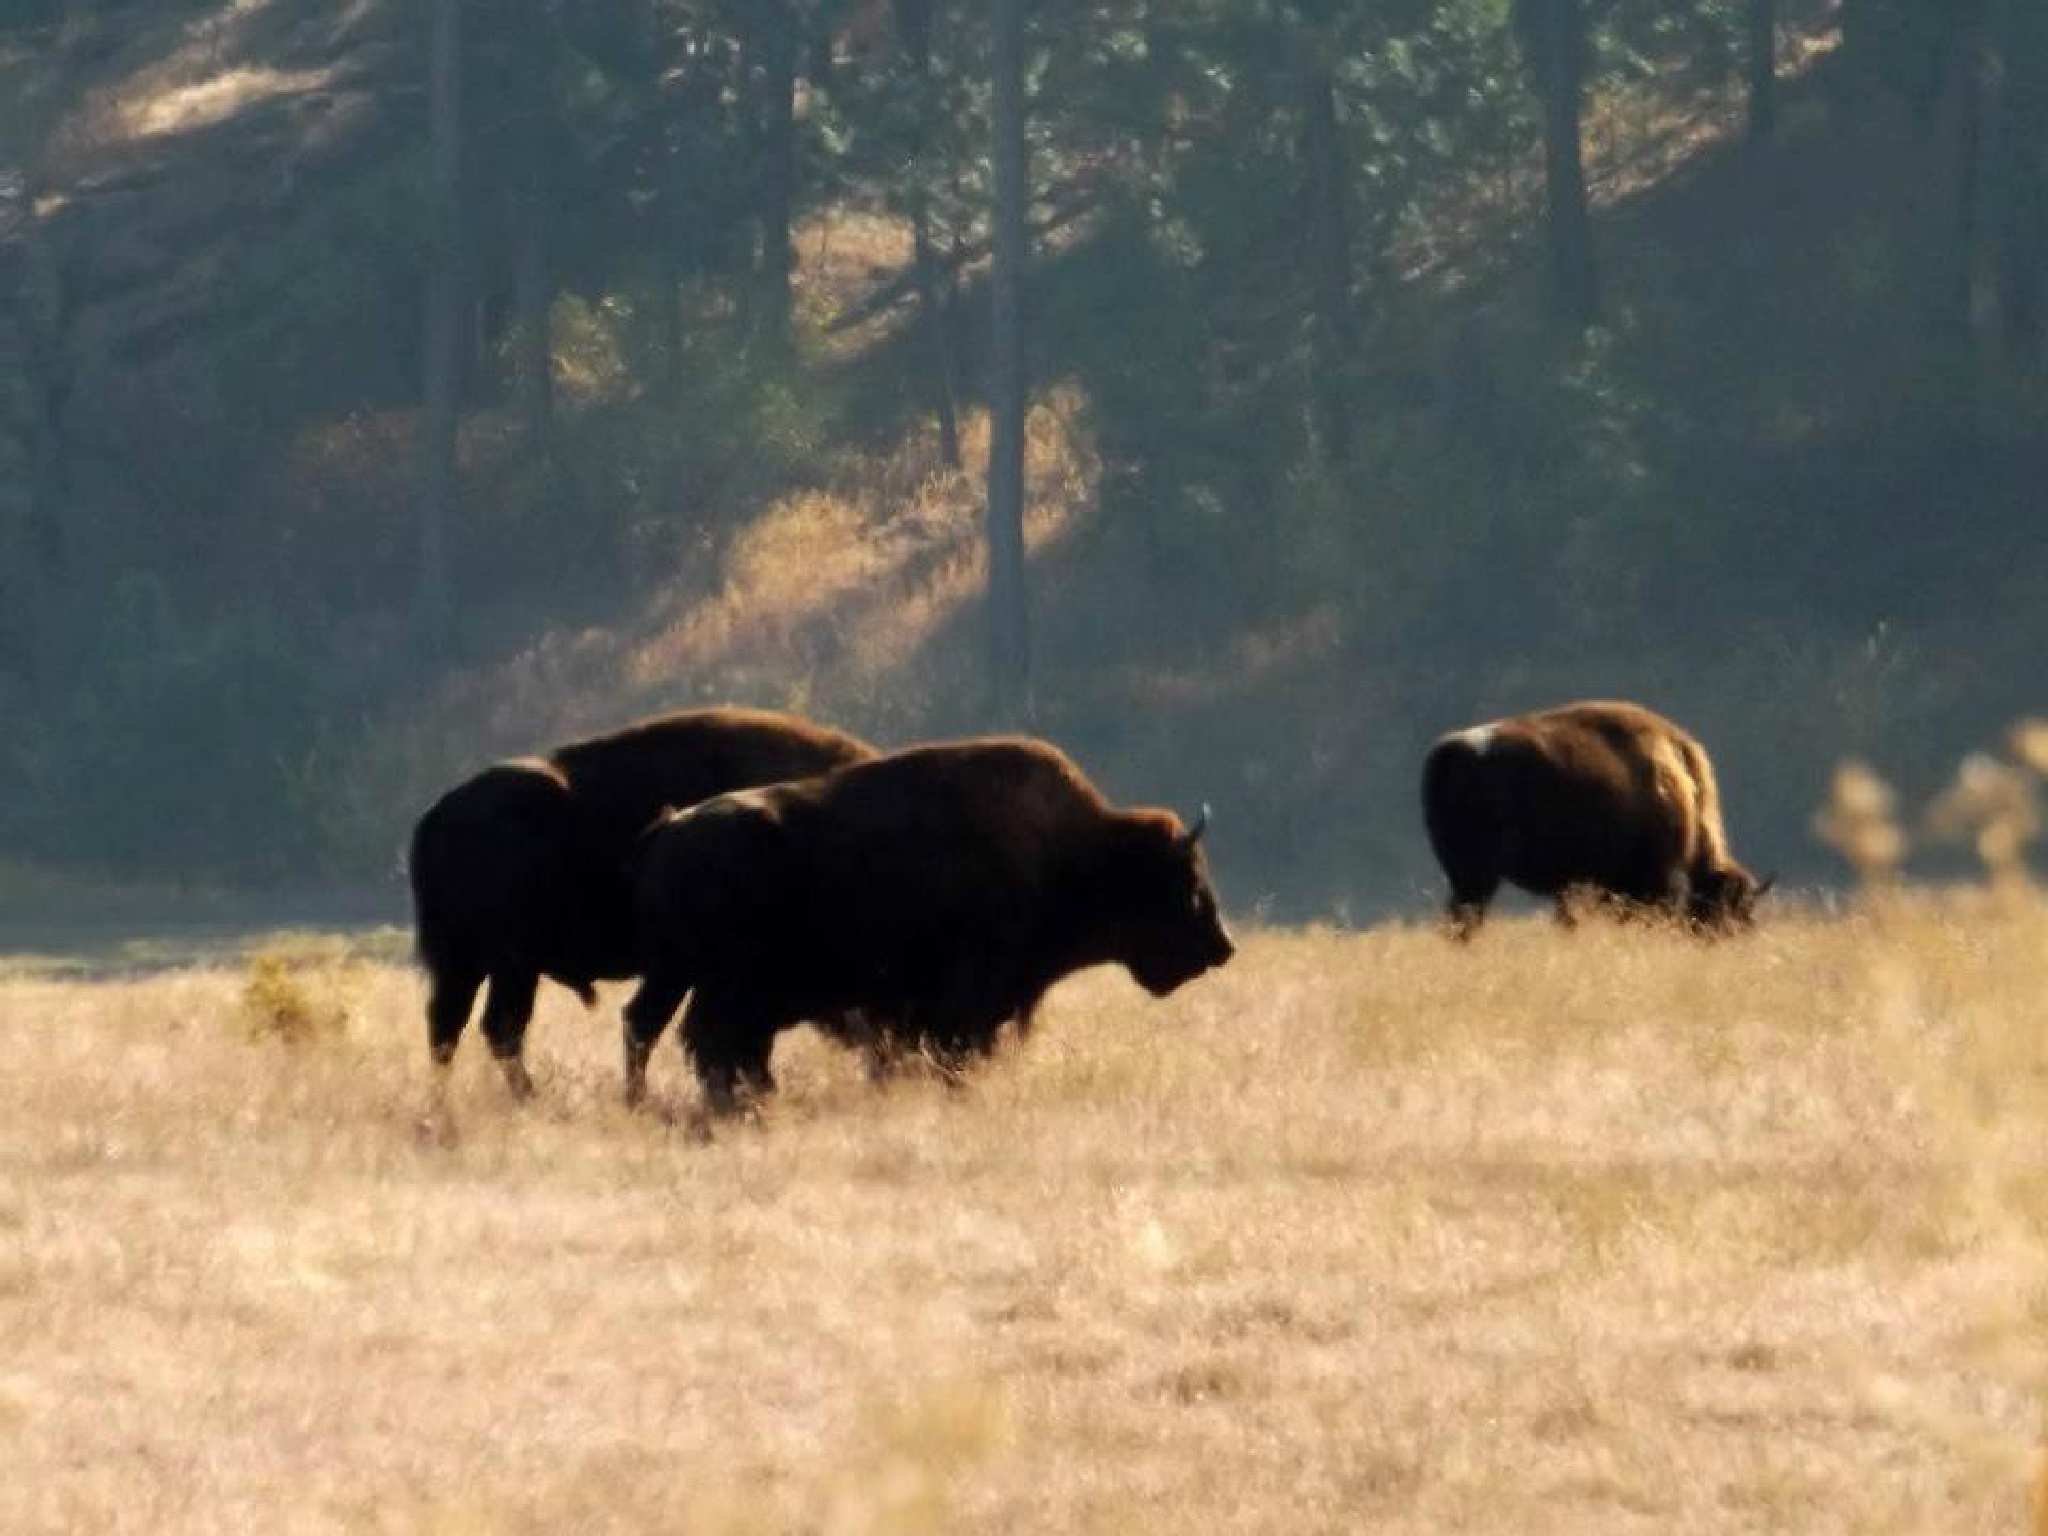 """Bison's In A Field"" by Ron Berkley"